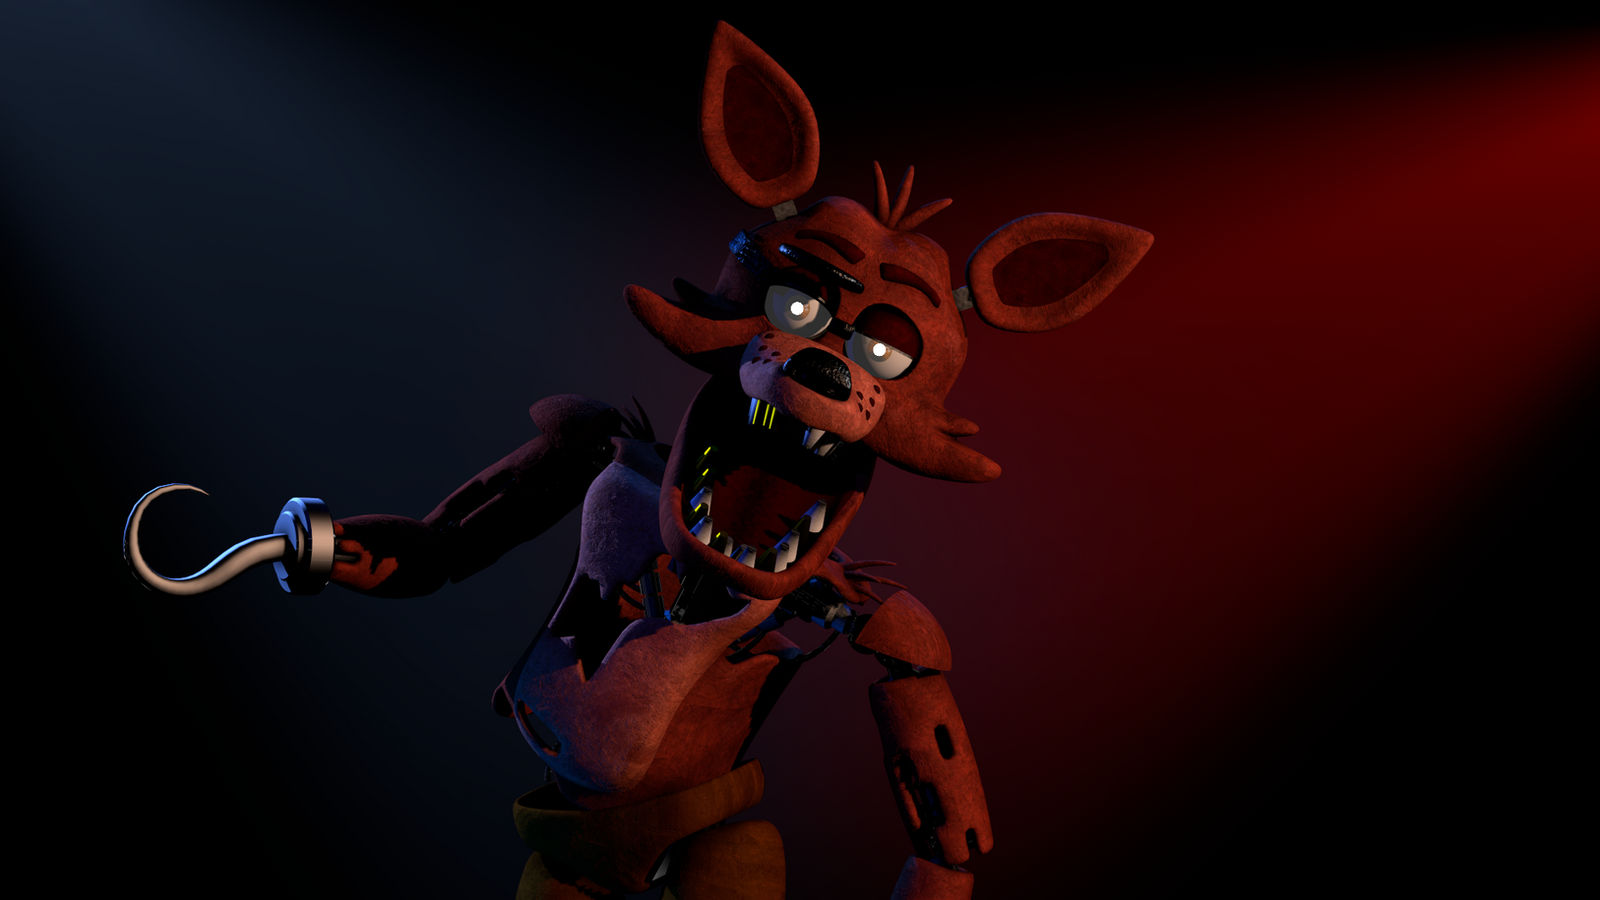 Foxy the pirate jumpscare remake by ThePirateCoveMan on